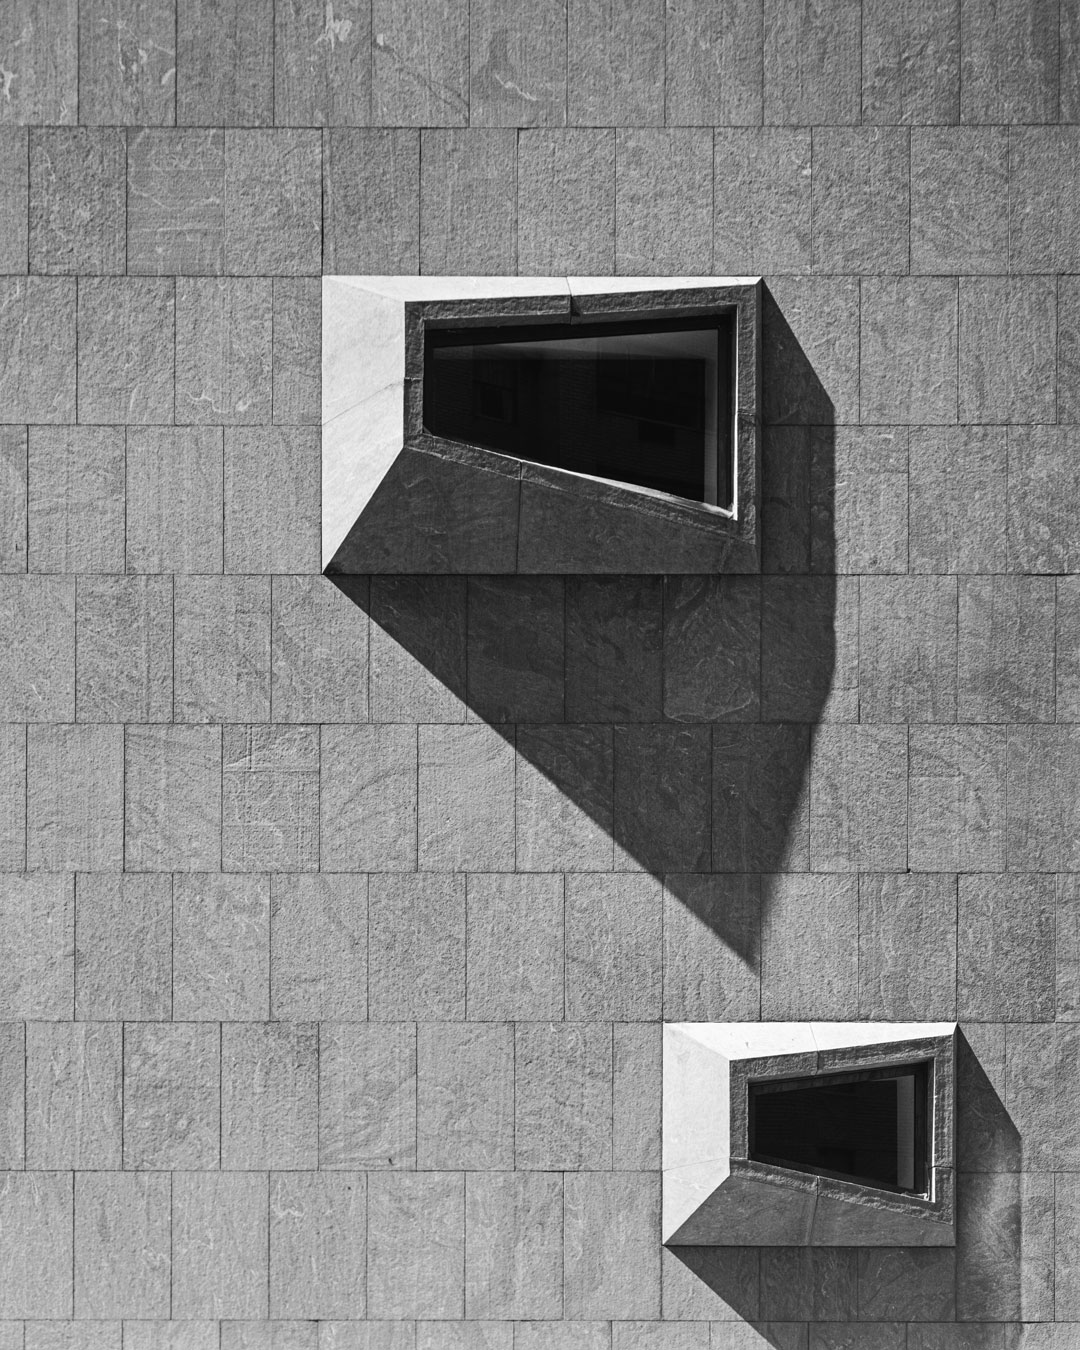 Ezra Stoller: Marcel Breuer, Whitney Museum of American Art, now Met Breuer (1966), New York, NY, 1966